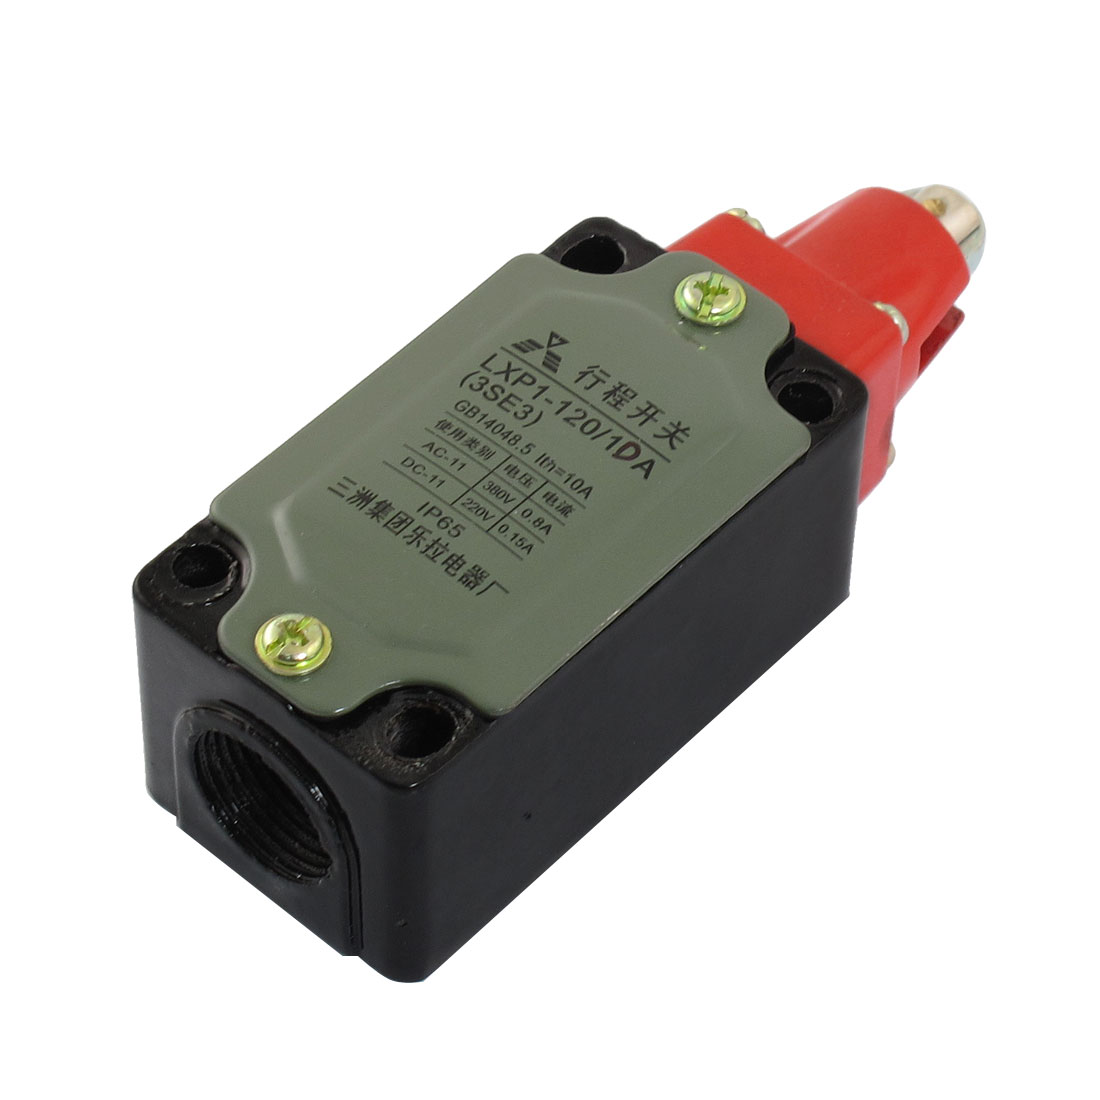 NO NC SPDT Enclosed Momentary Parallel Roller Plunger Limit Switch 0.15A 220VDC 0.8A 380VAC